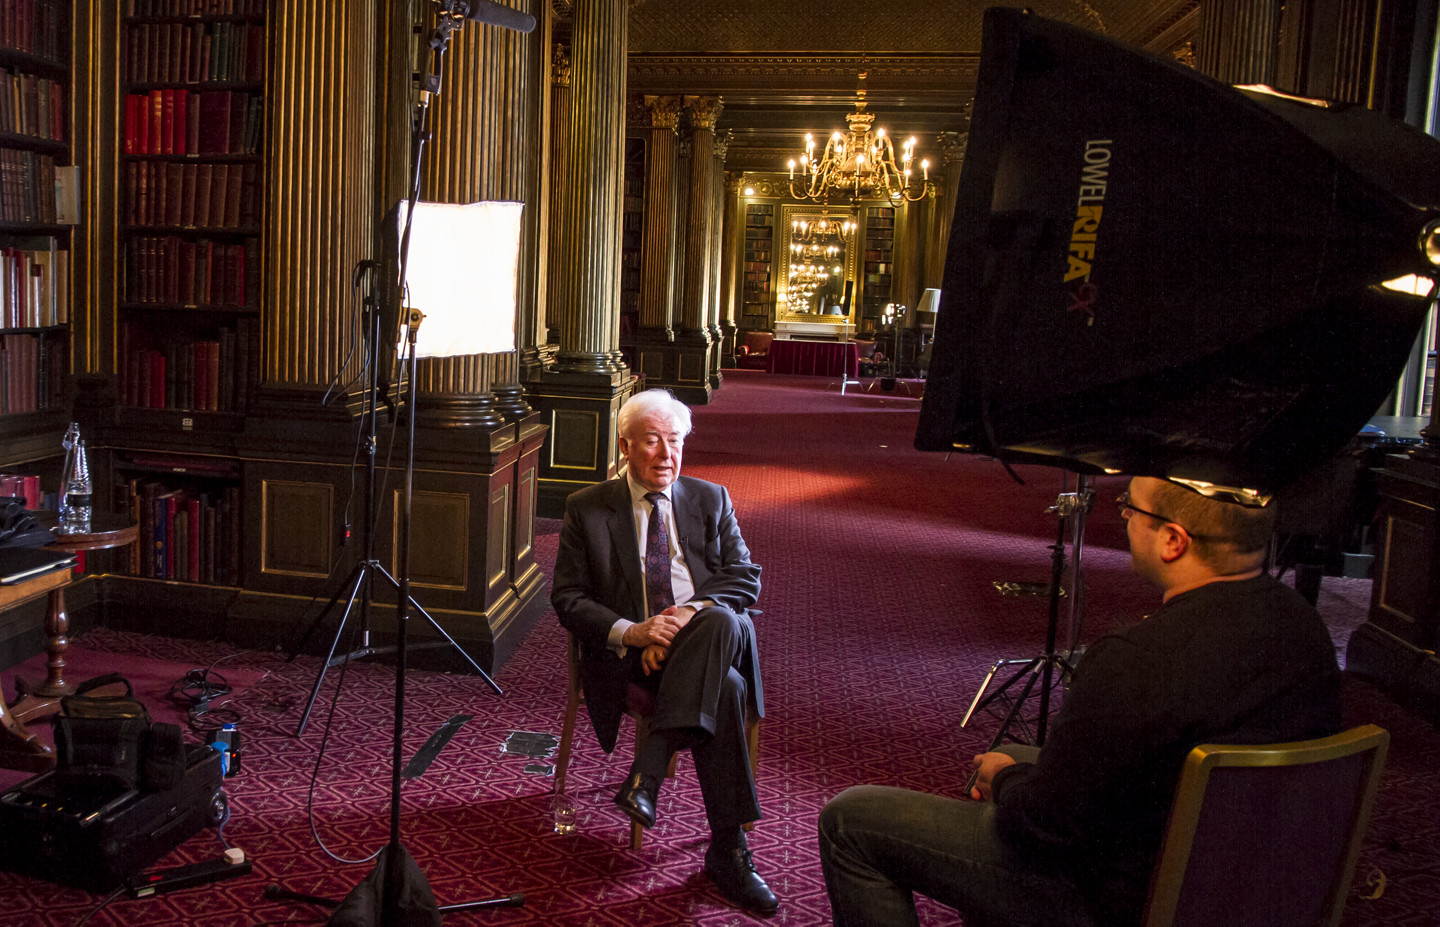 We had the privilege of interviewing John O'Sullivan, author of the The Pope, the President and the Prime Minister at the famed Reform club in London. This was the filming location for the iconic James Bond sword fight depicted in Die Another Day.